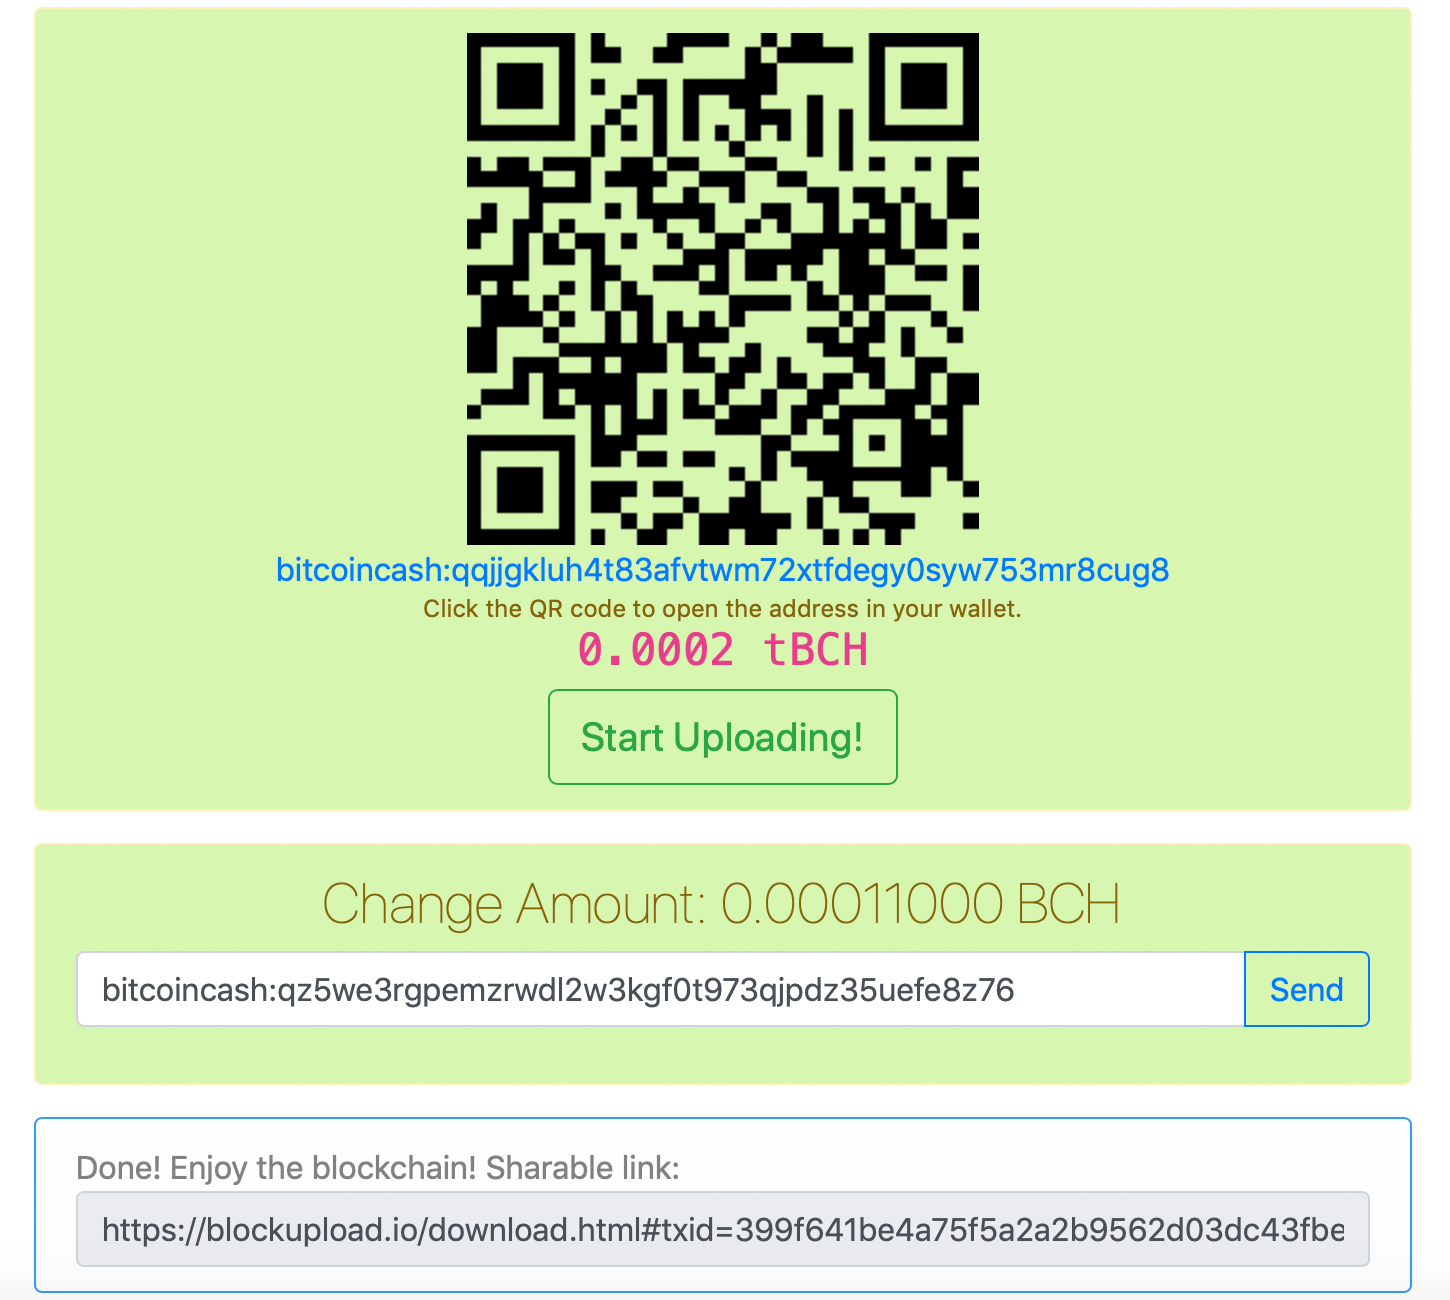 Embed 1MB Files on the Bitcoin Cash Chain With the Blockupload Platform